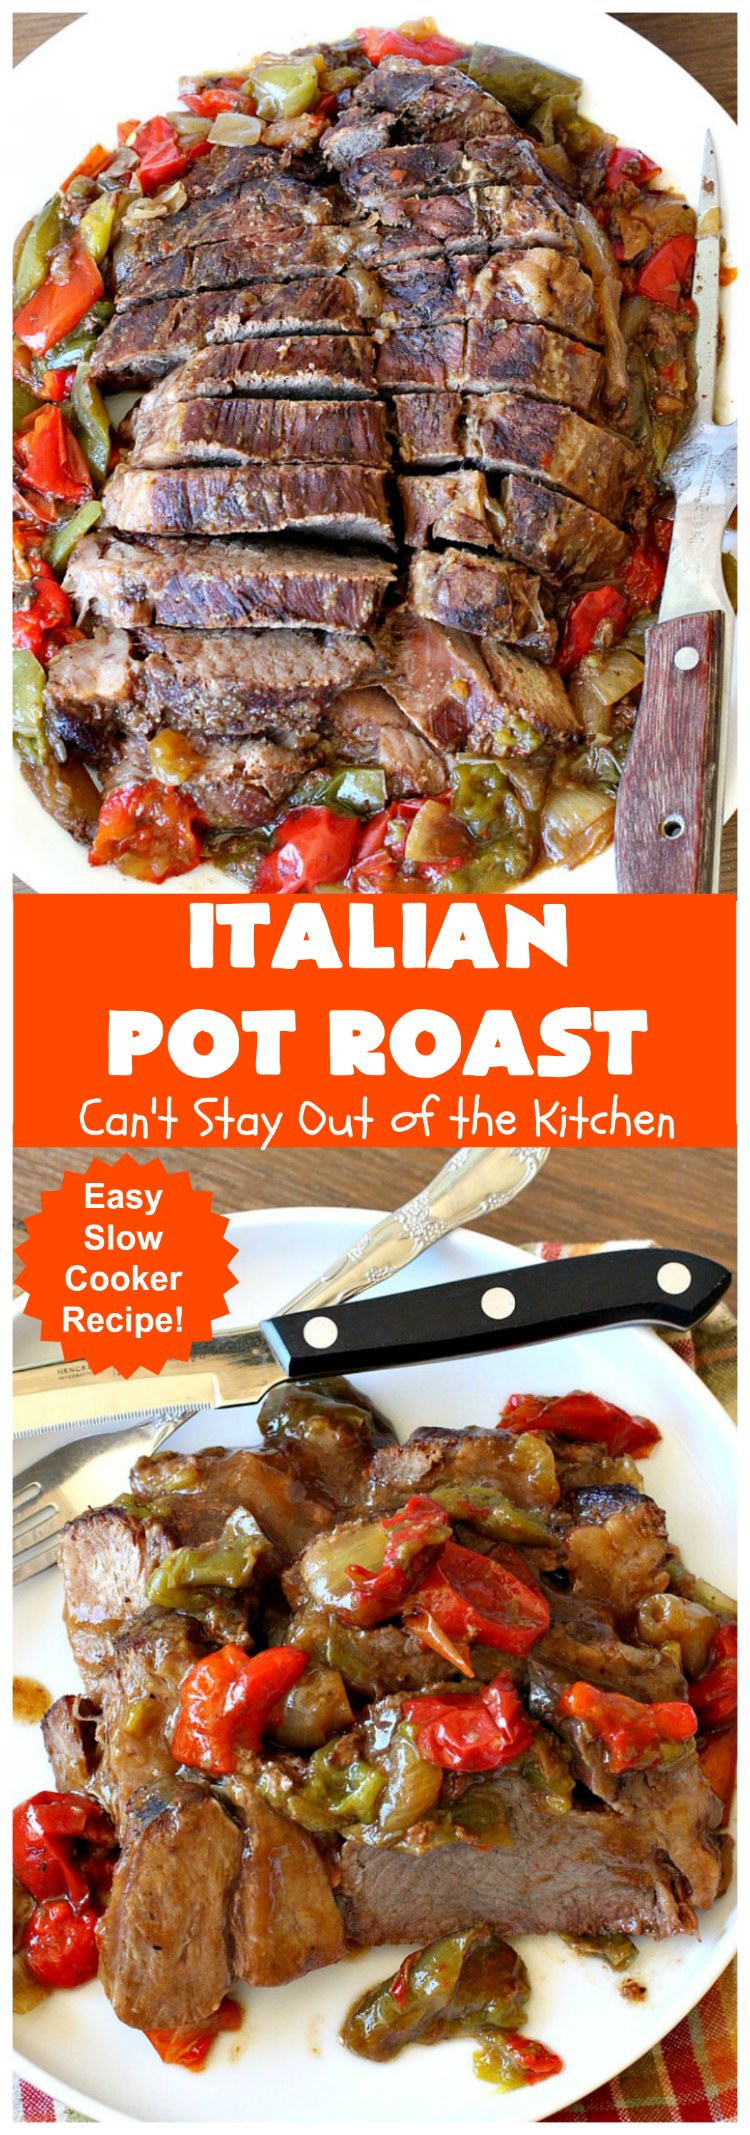 Italian Pot Roast | Can't Stay Out of the Kitchen | This super easy 7-ingredient #PotRoast #recipe is made in the #SlowCooker. Scrumptious to the taste buds and so quick & simple to prepare. Great for weeknight or company dinners. #Italian #ItalianPotRoast #Crockpot